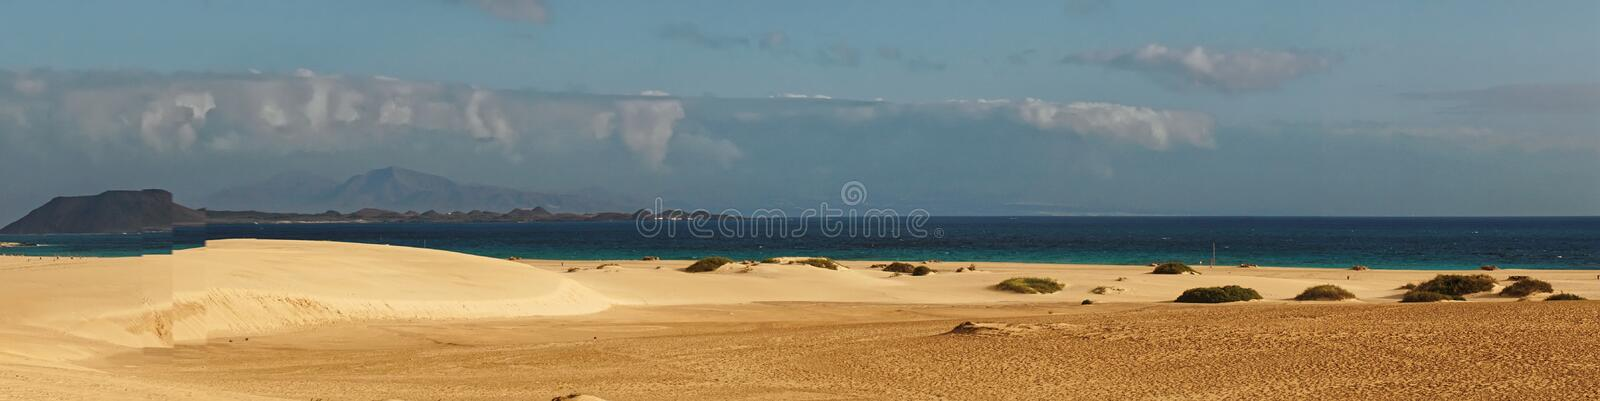 Sandy Beach Panorama foto de stock